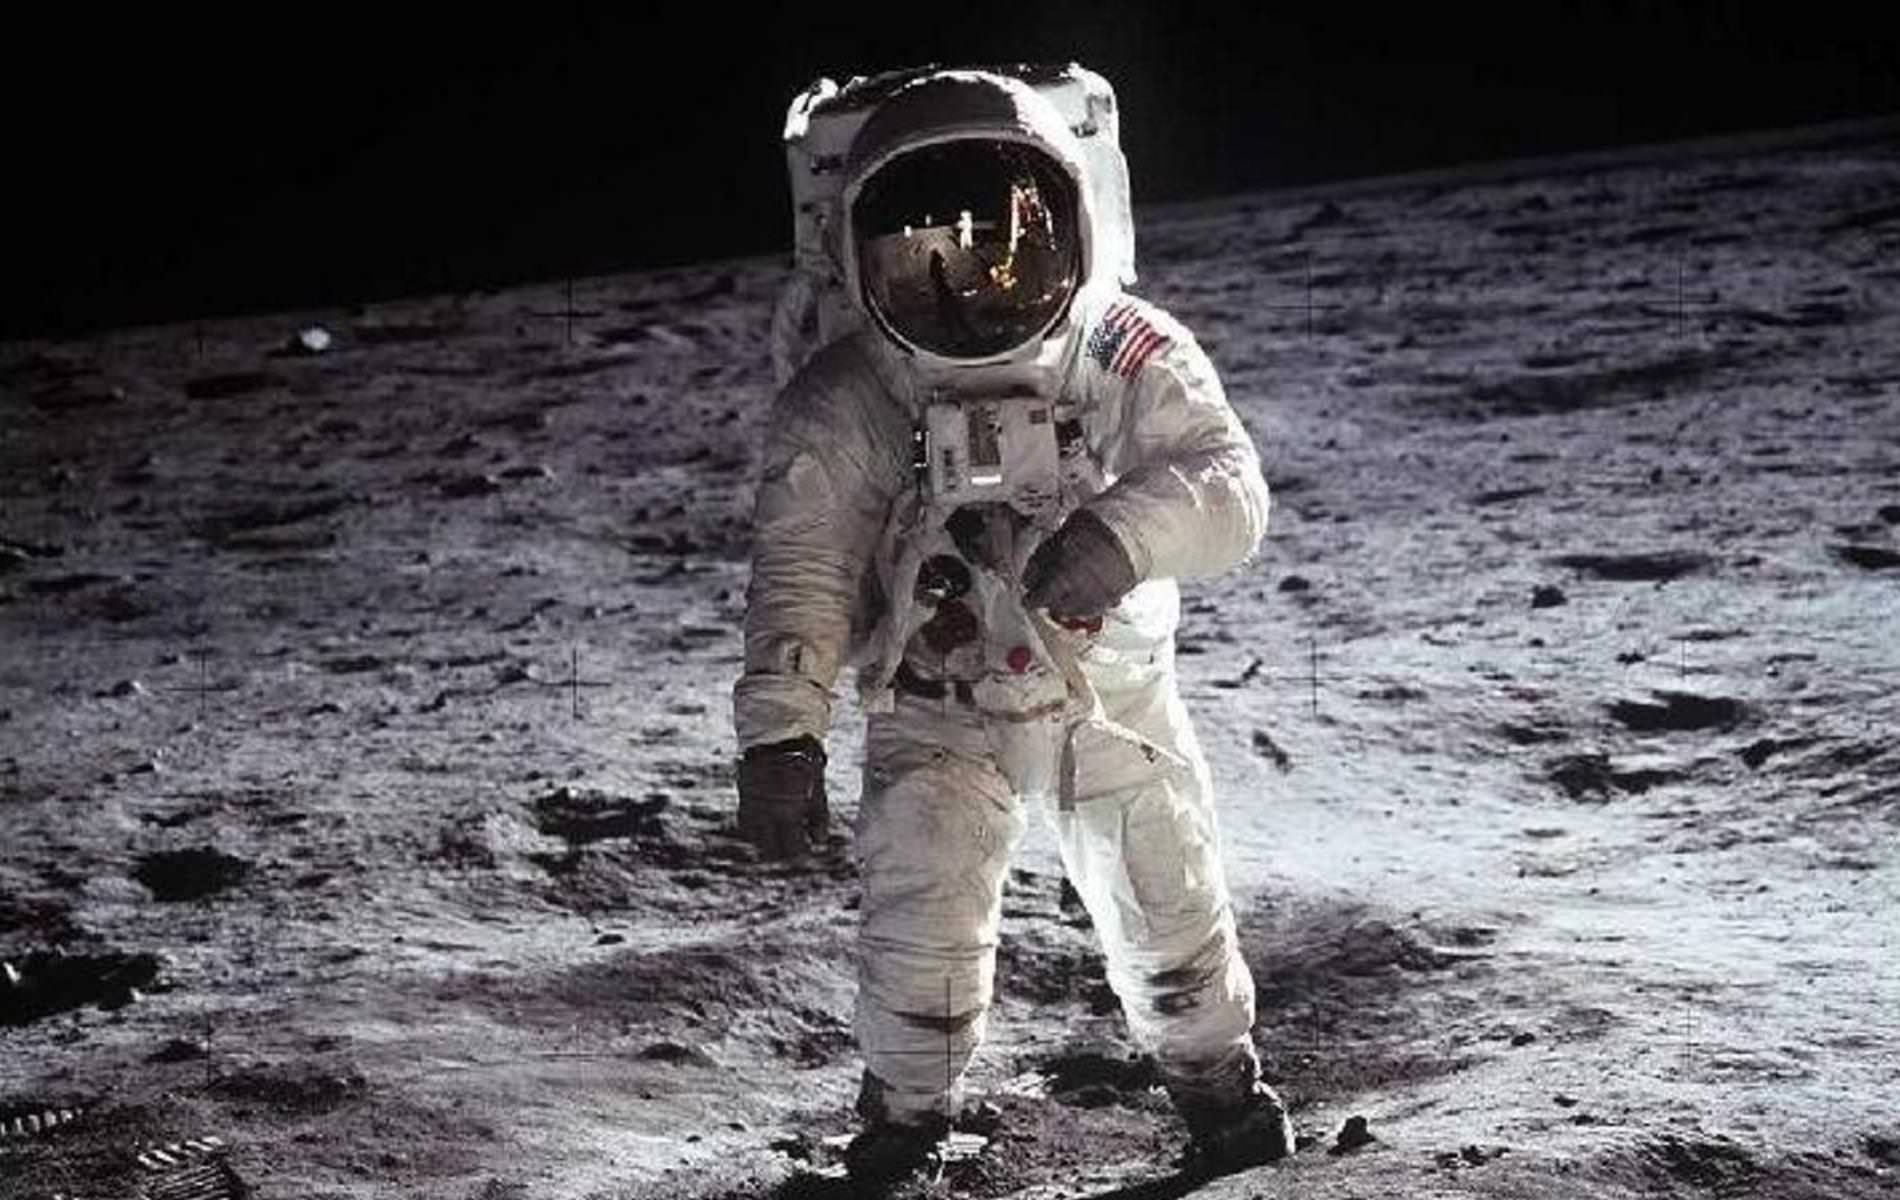 astronauts to go to moon - photo #18